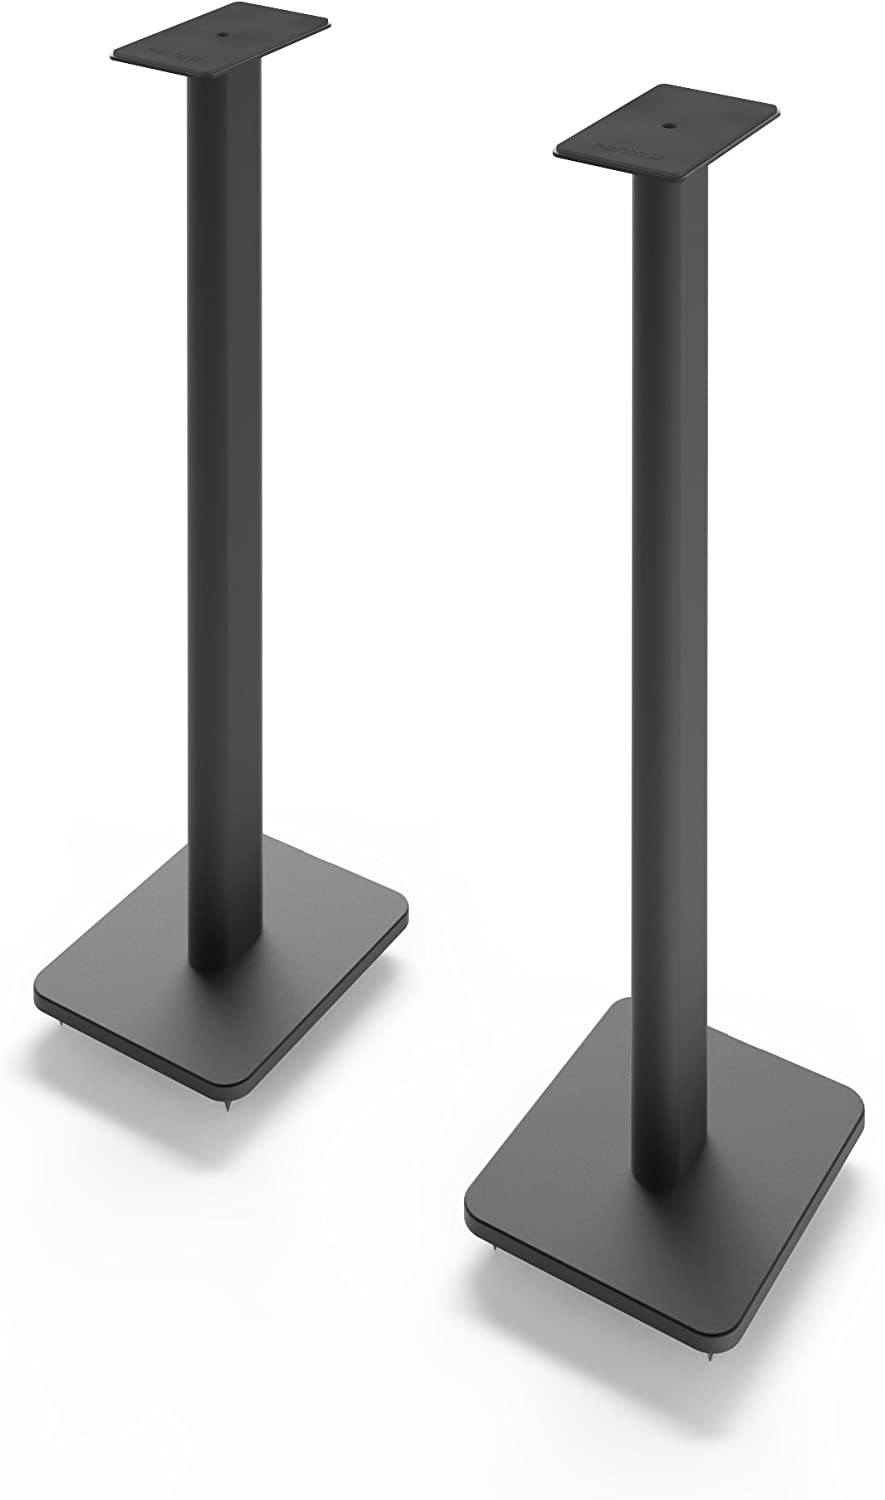 Kanto SP32PL 32 Bookshelf Speaker Stands, Black